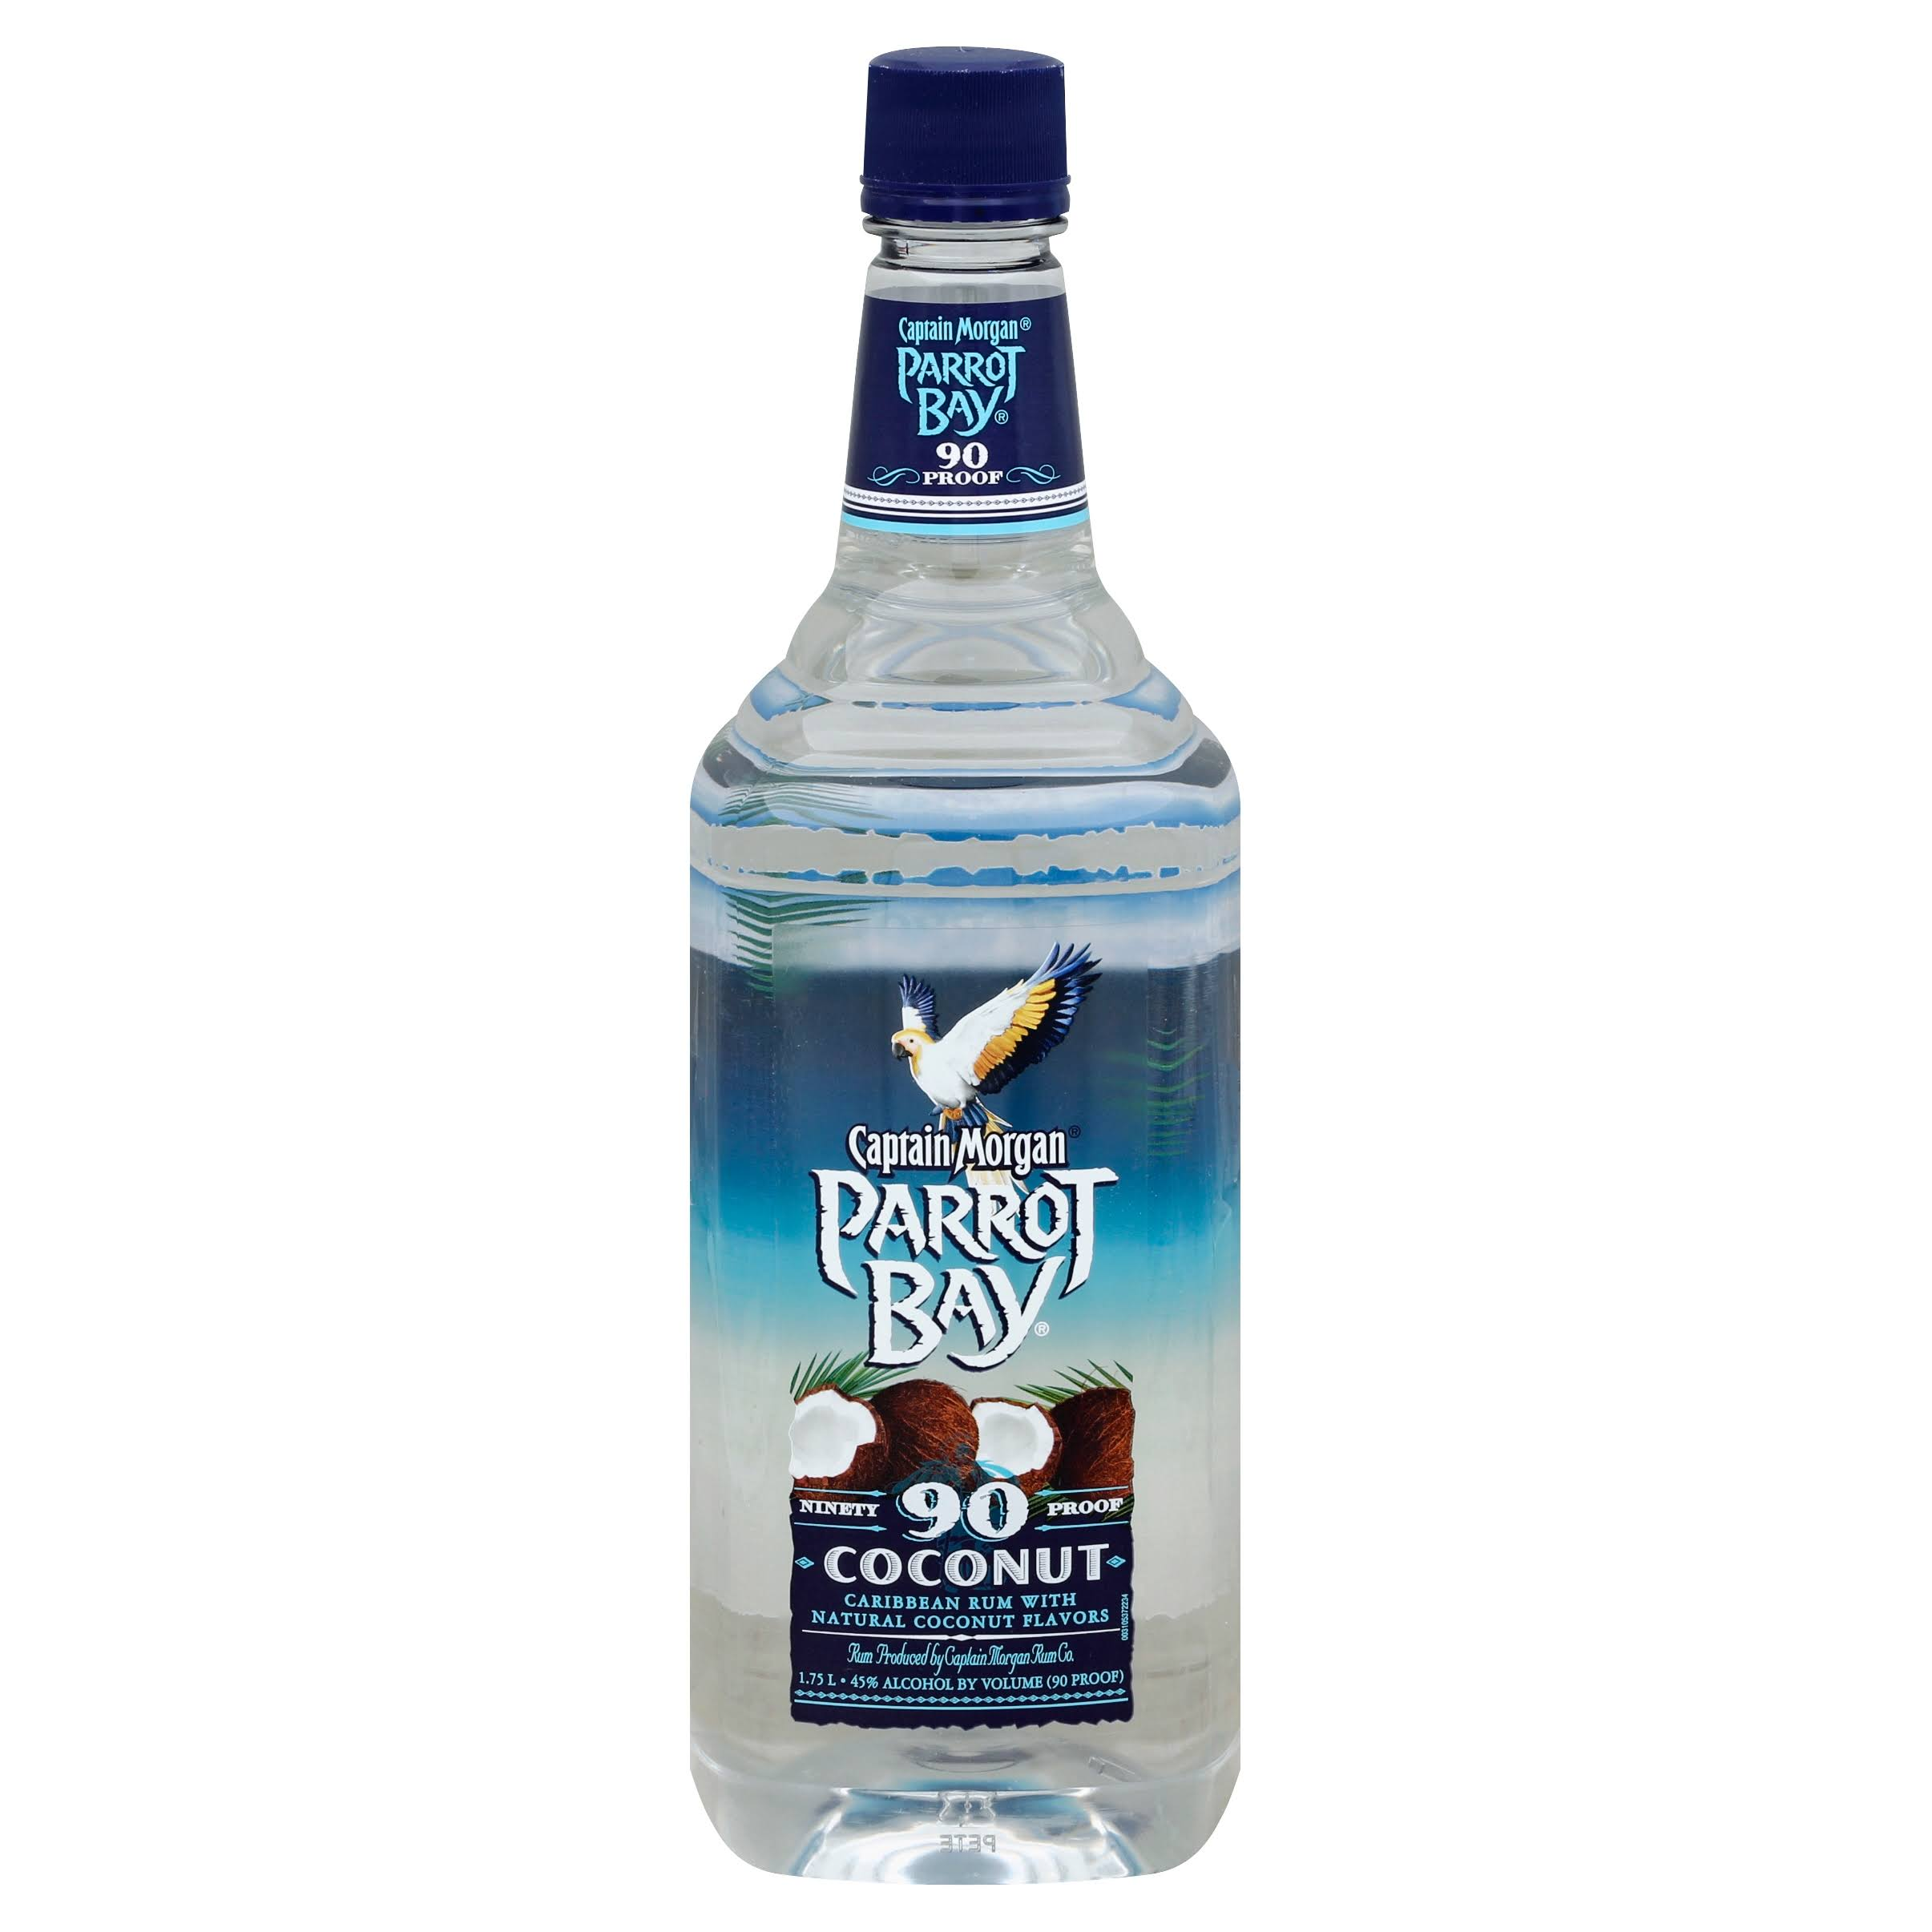 Parrot Bay Caribbean Rum, 90 Ninety Proof, with Natural Coconut Flavor - 1.75 l